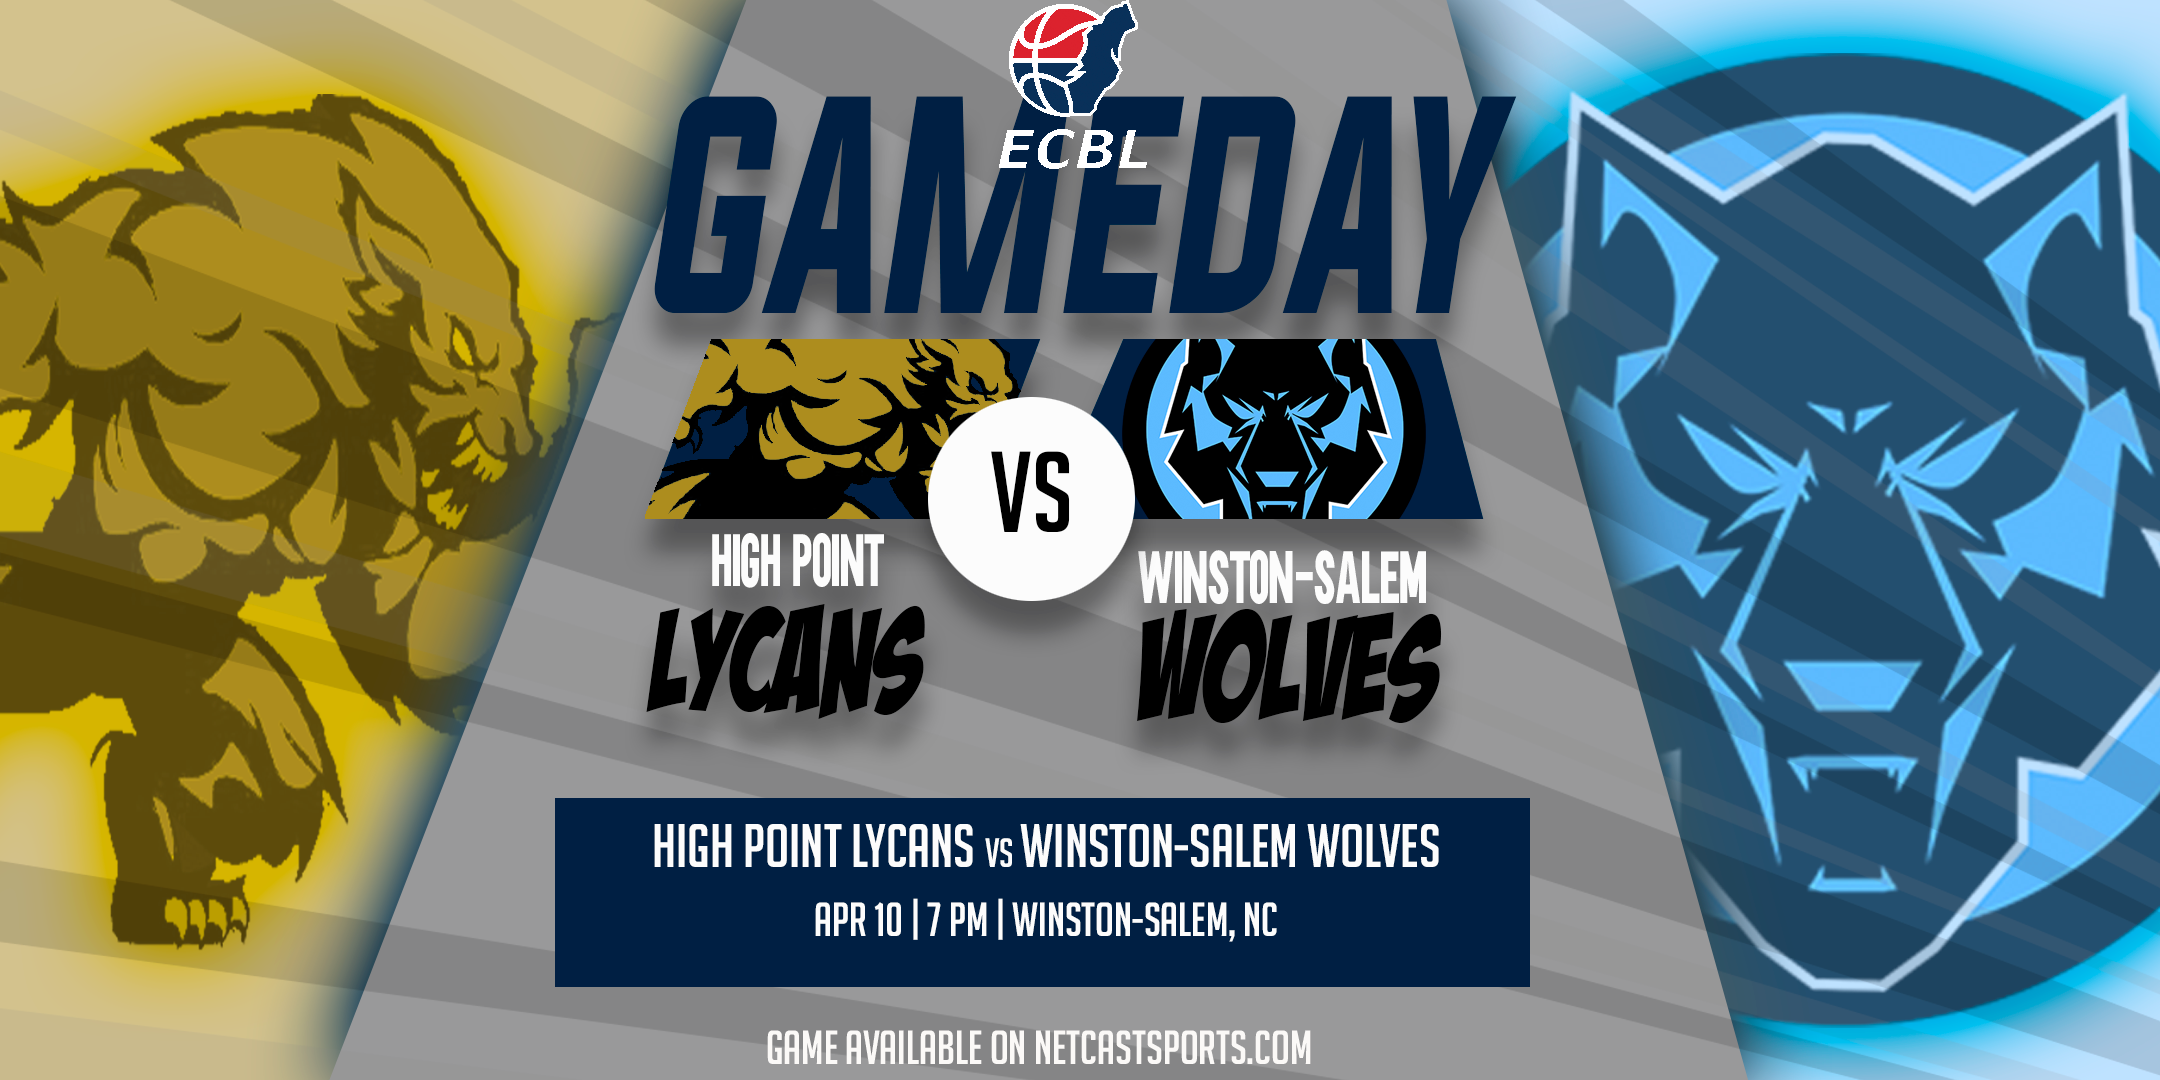 Winston-Salem Wolves vs High Point Lycans Gameday Promo